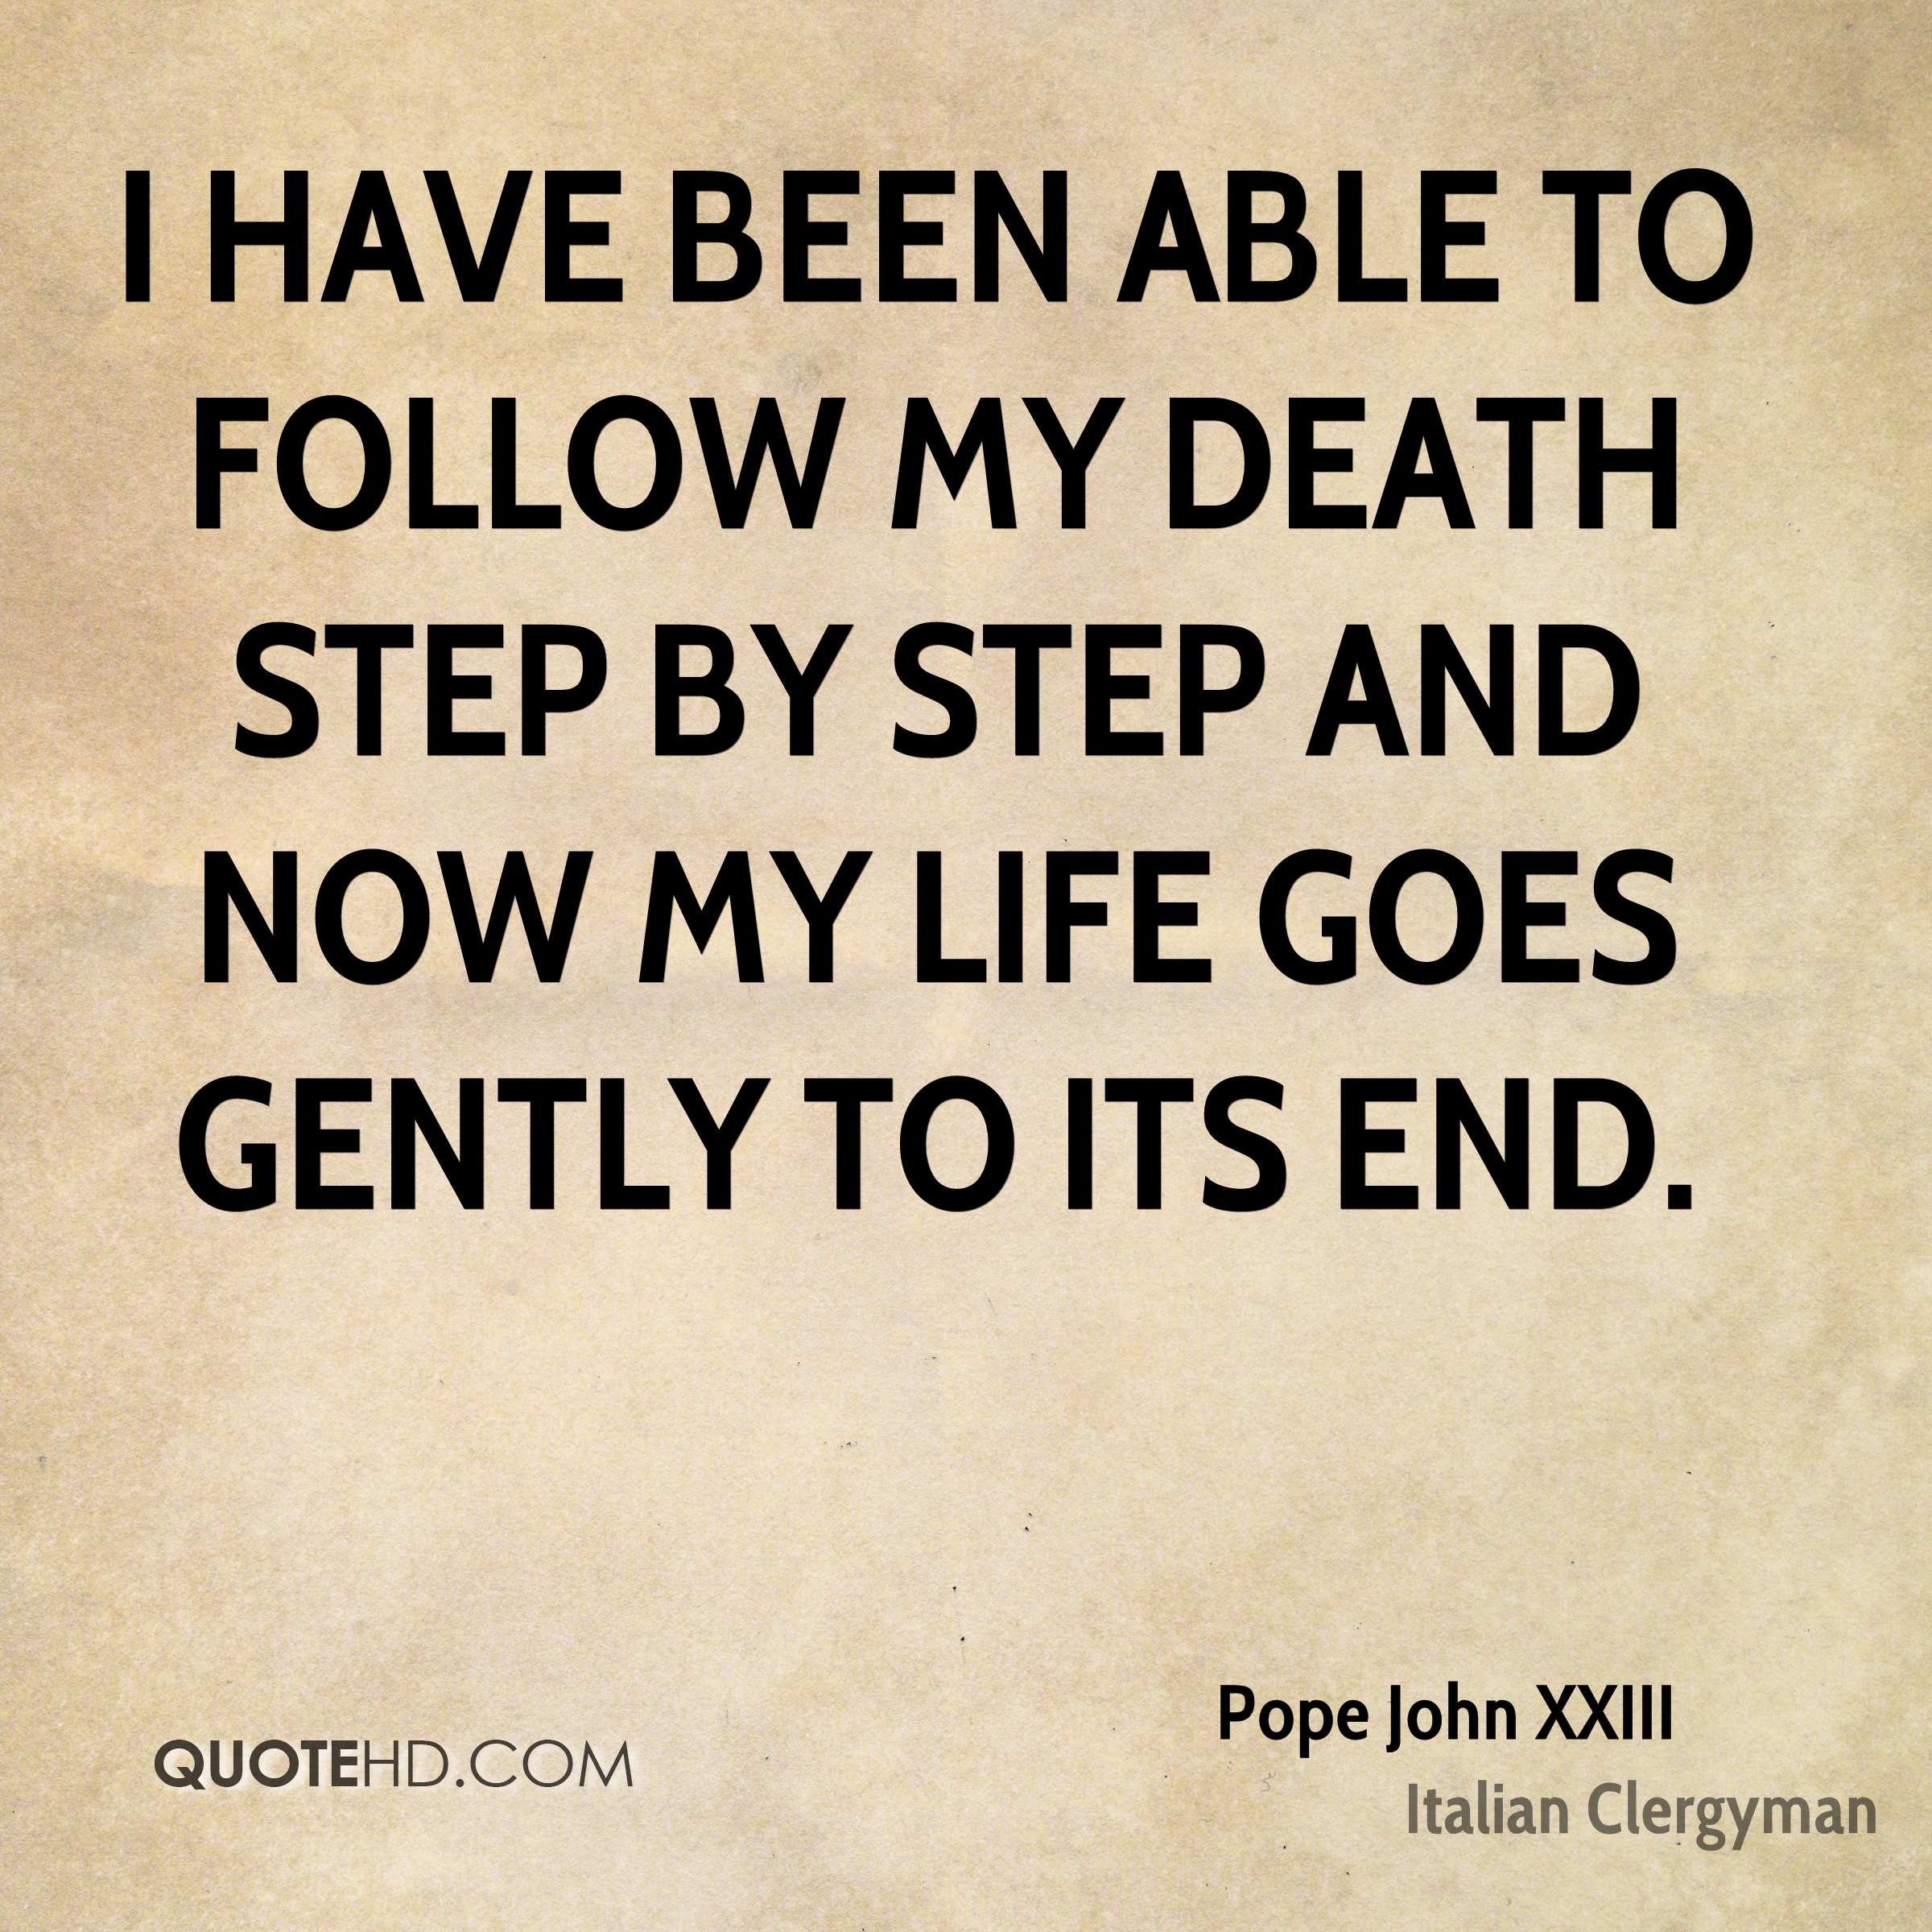 I have been able to follow my death step by step and now my life goes gently to its end.